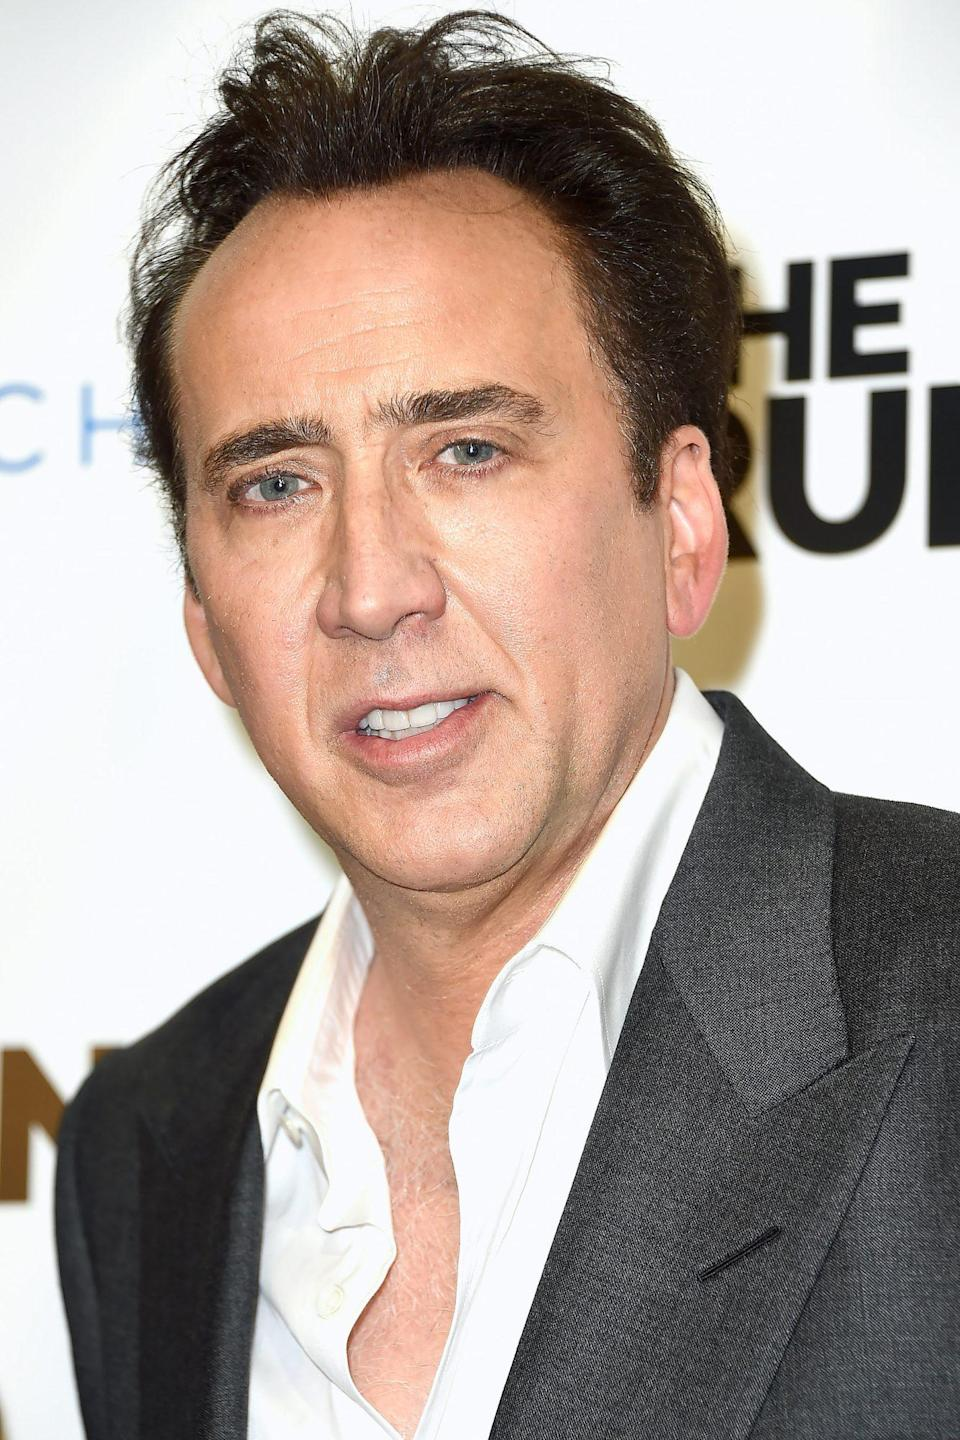 "<p><strong>Number of Marriages: </strong>4 </p> <p>Cage was married to Patricia Arquette from 1995 to 2001. He followed that up with a short-lived union with Lisa Marie Presley, whom he married in 2002. The pair filed for divorce just a few months later. He was then married to Alice Kim from 2004 to 2016.</p> <p>In 2019, he married Erike Koike, but requested a divorce just four days after their Las Vegas elopement. The <a href=""https://people.com/movies/nicolas-cage-pretty-upset-over-recent-divorce-from-4-day-bride/"" rel=""nofollow noopener"" target=""_blank"" data-ylk=""slk:marriage was annulled two months later"" class=""link rapid-noclick-resp"">marriage was annulled two months later</a>. </p>"